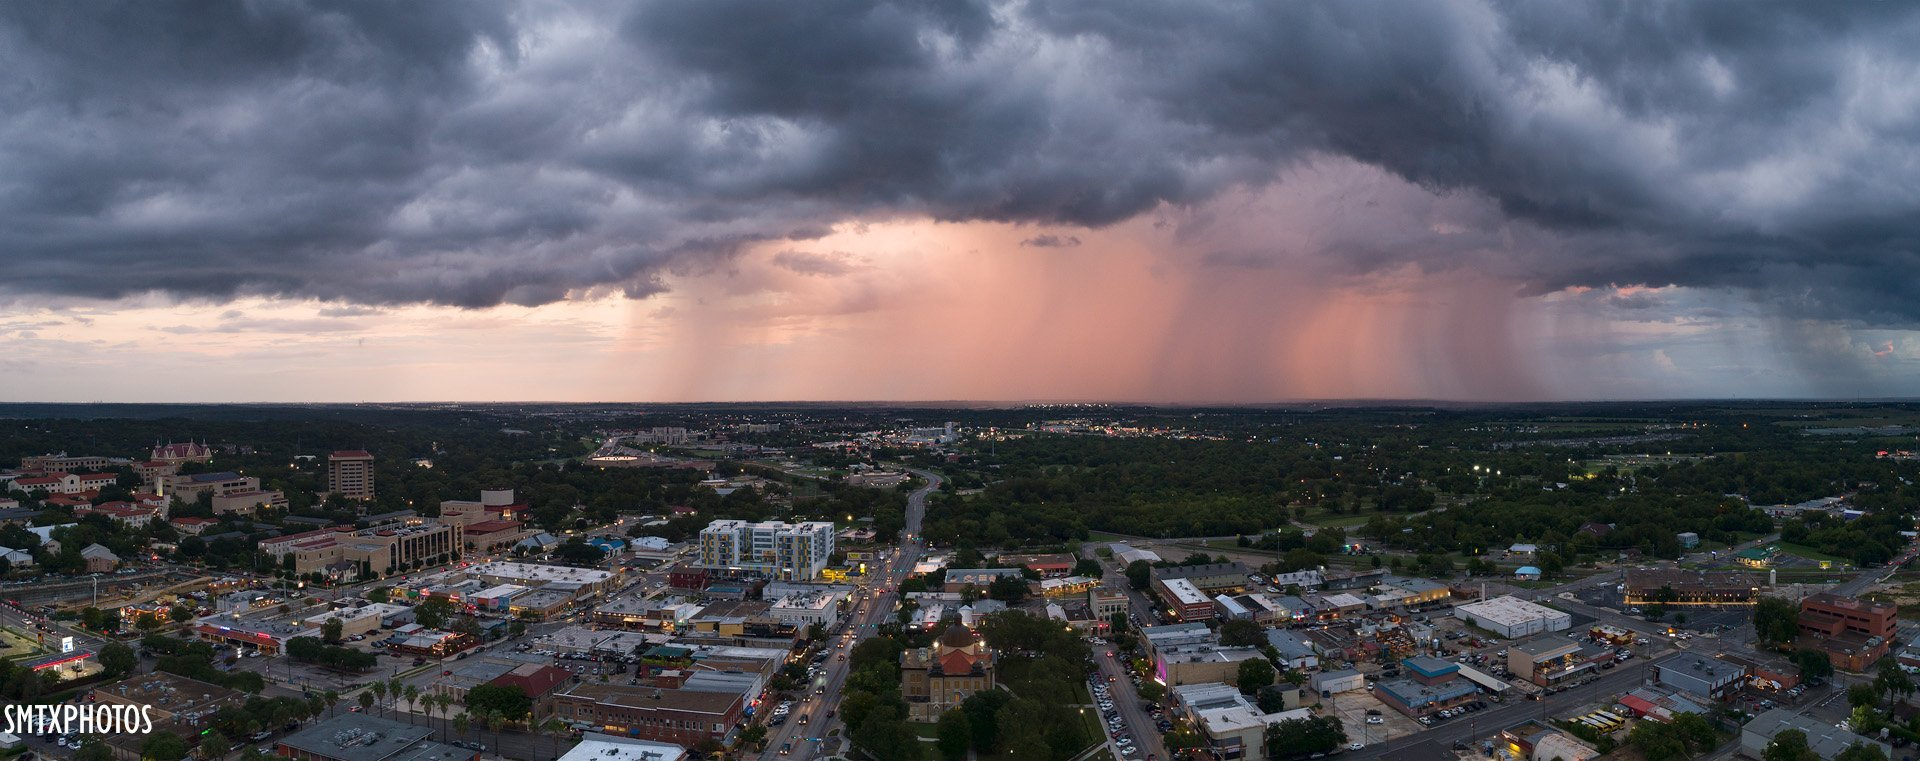 A photo from above of the San Marcos town at sunset. The sky has shades of pink and orange and the clouds in the distance have rain pouring.